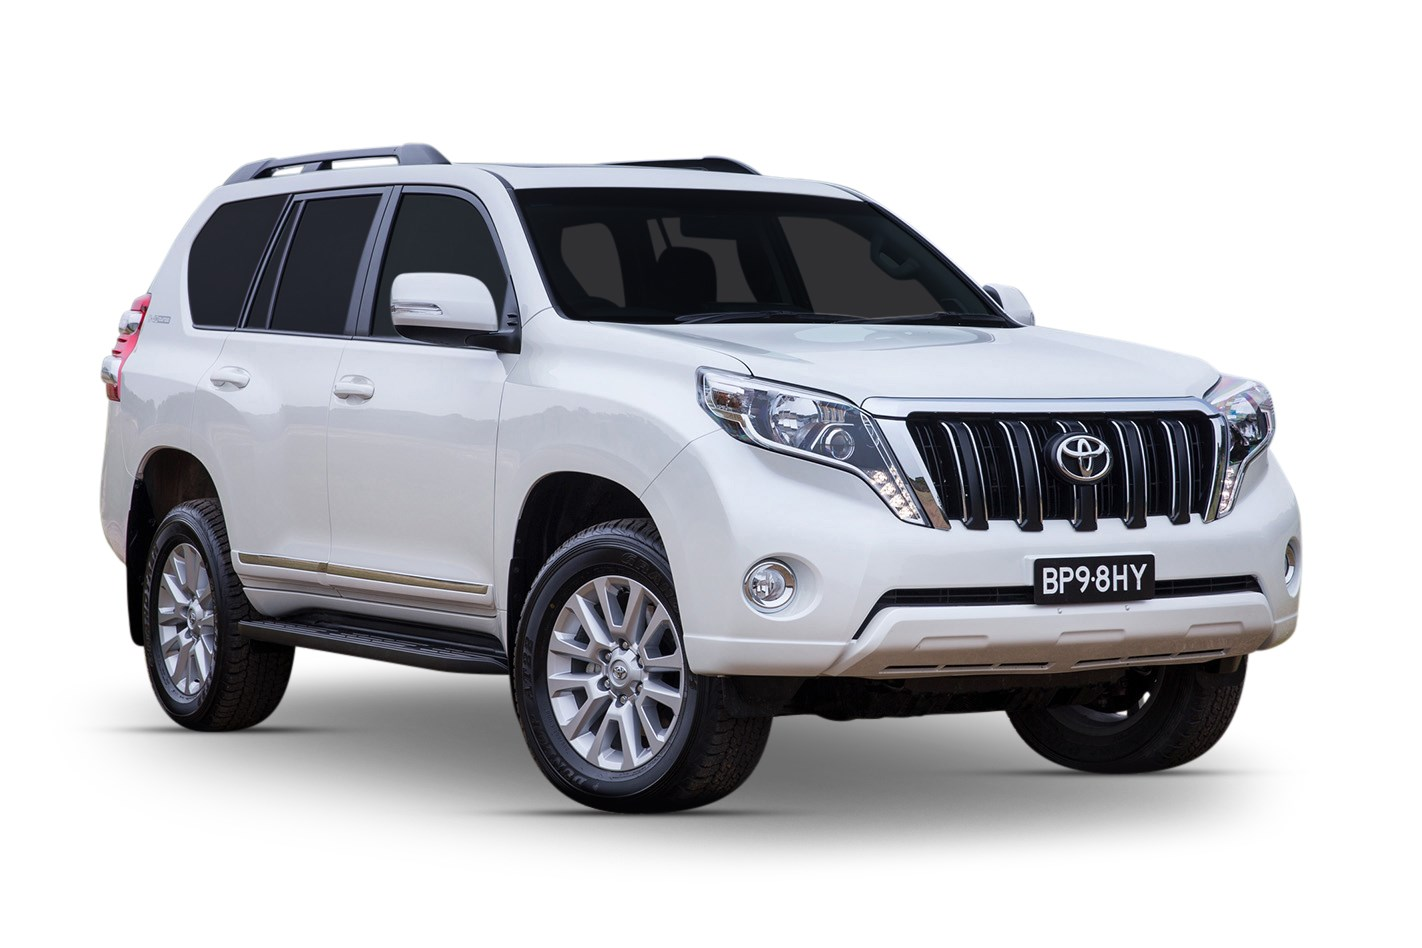 Toyota Land Cruiser Prado 150 Series Restyling 2 2017 - now SUV 5 door #1